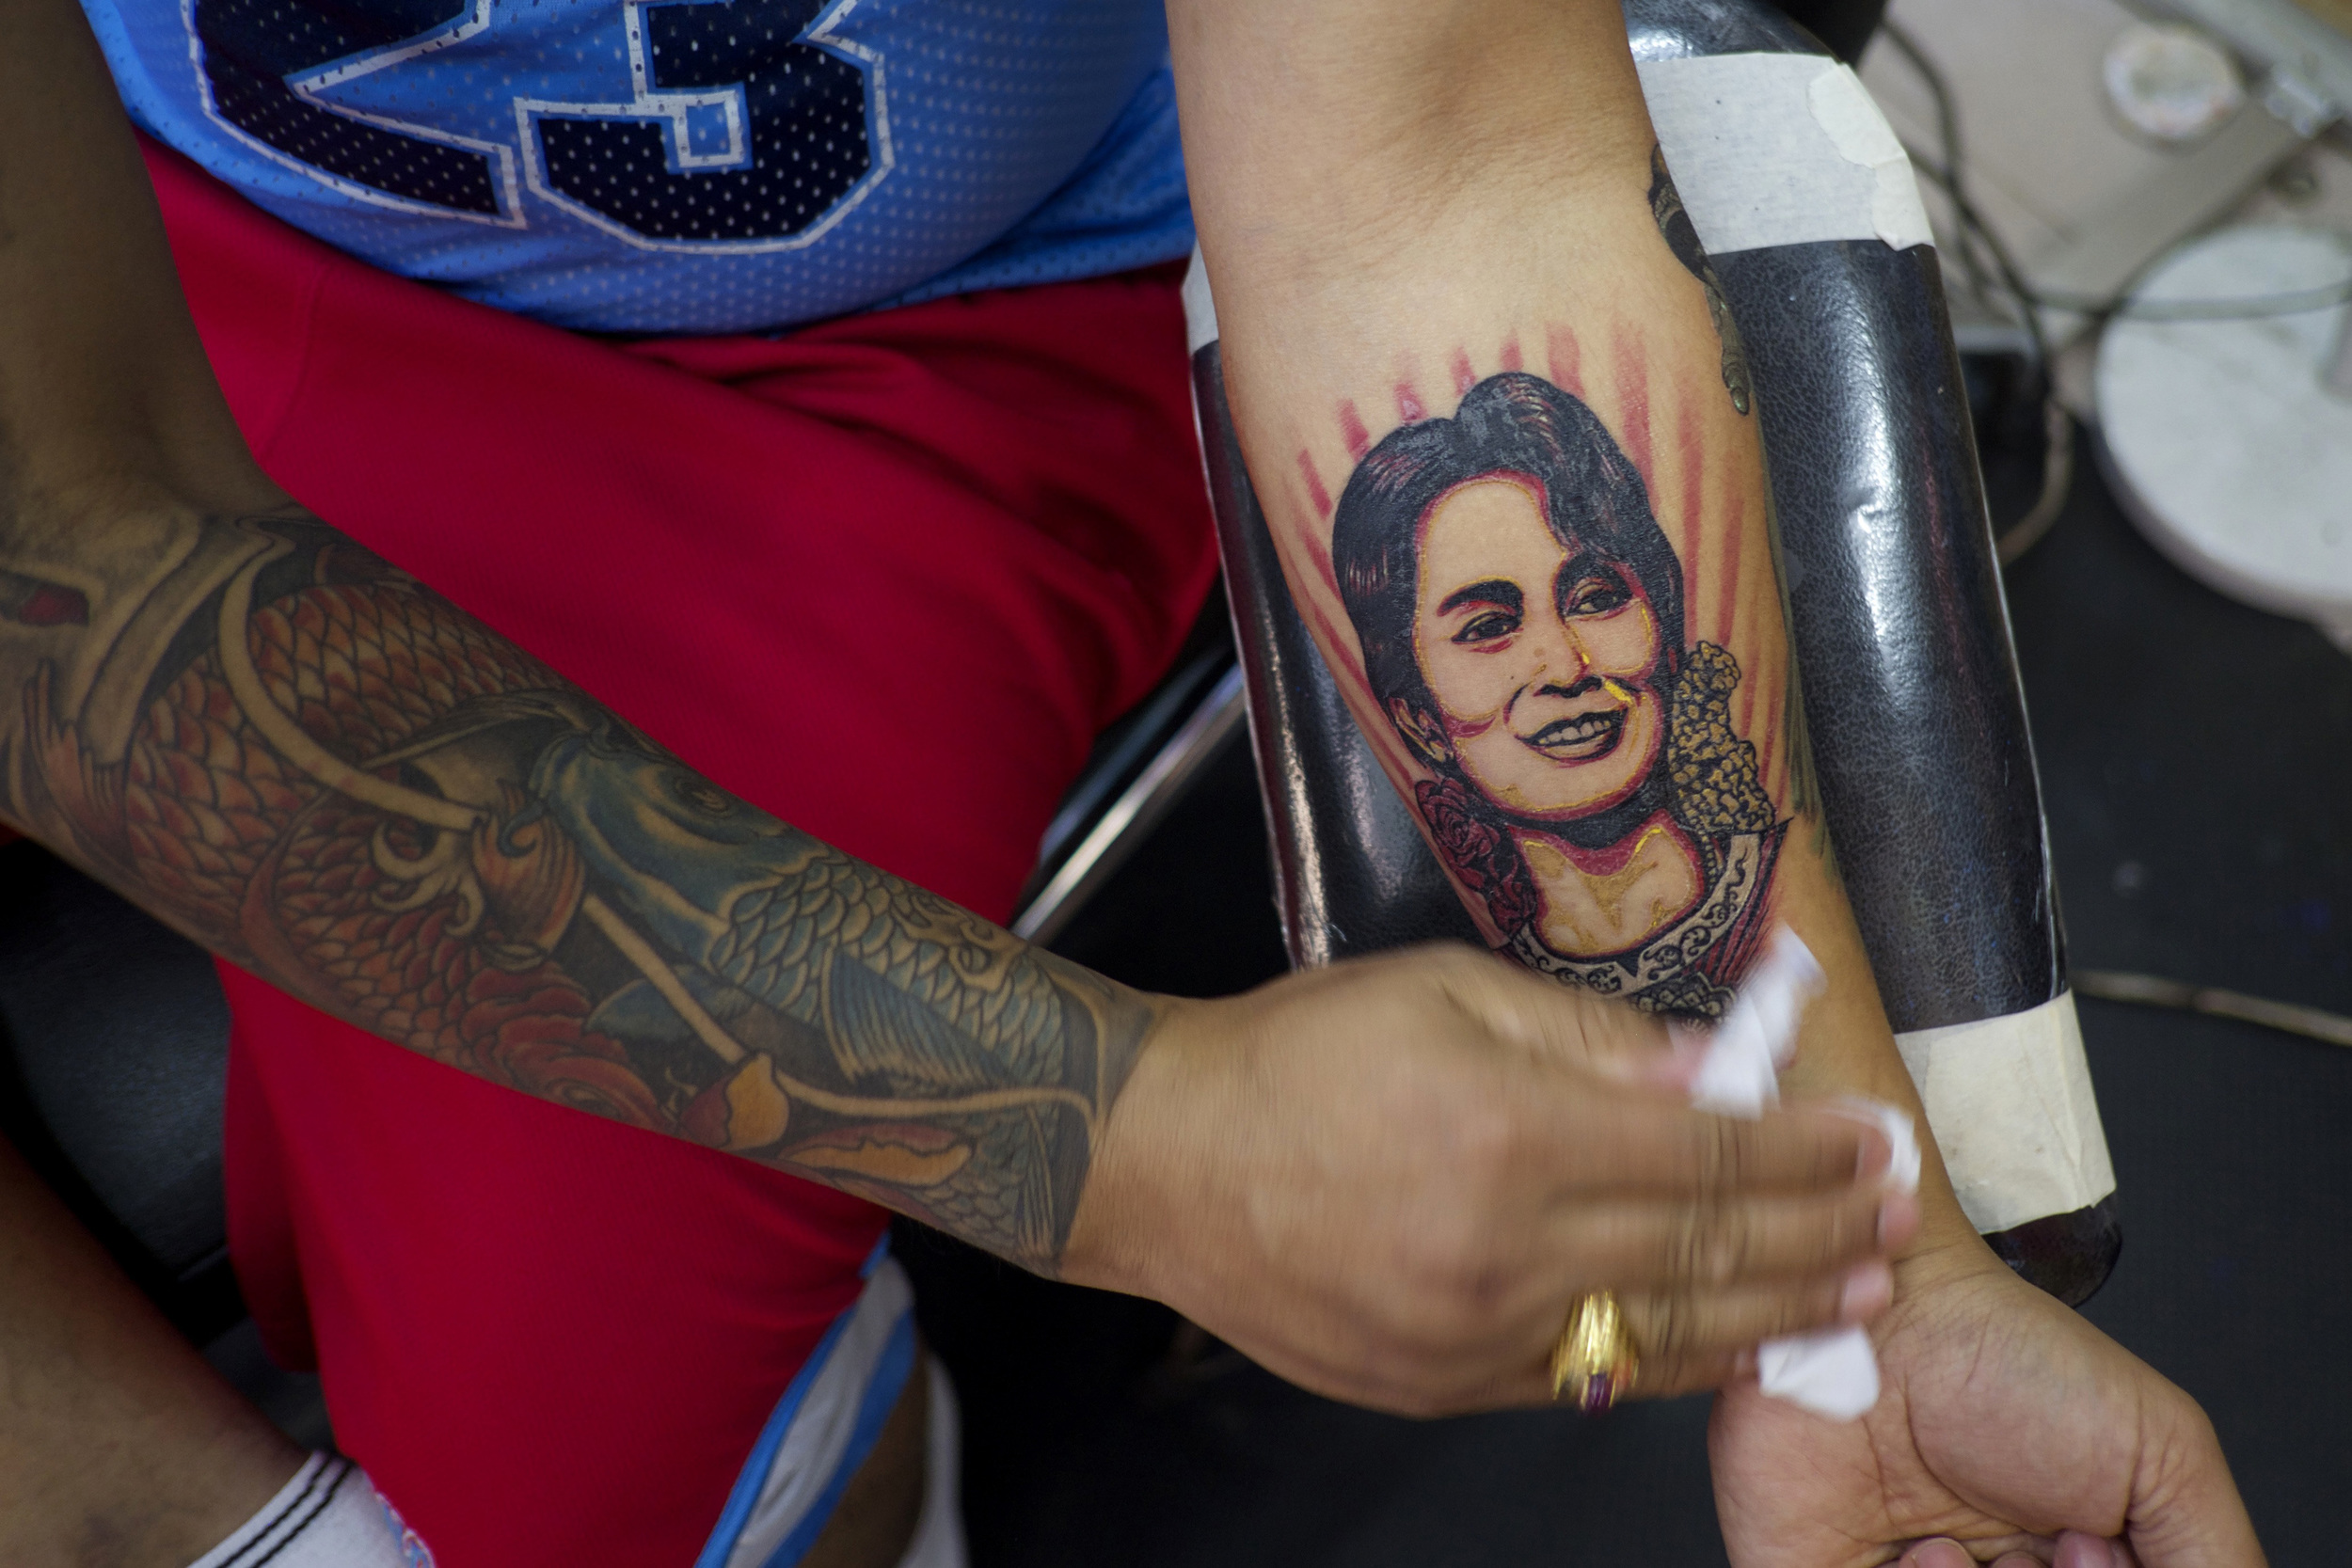 Kyaw Say got his Aung San Suu Kyi tattoo the day after the election. (Credit: Dene-Hern Chen)